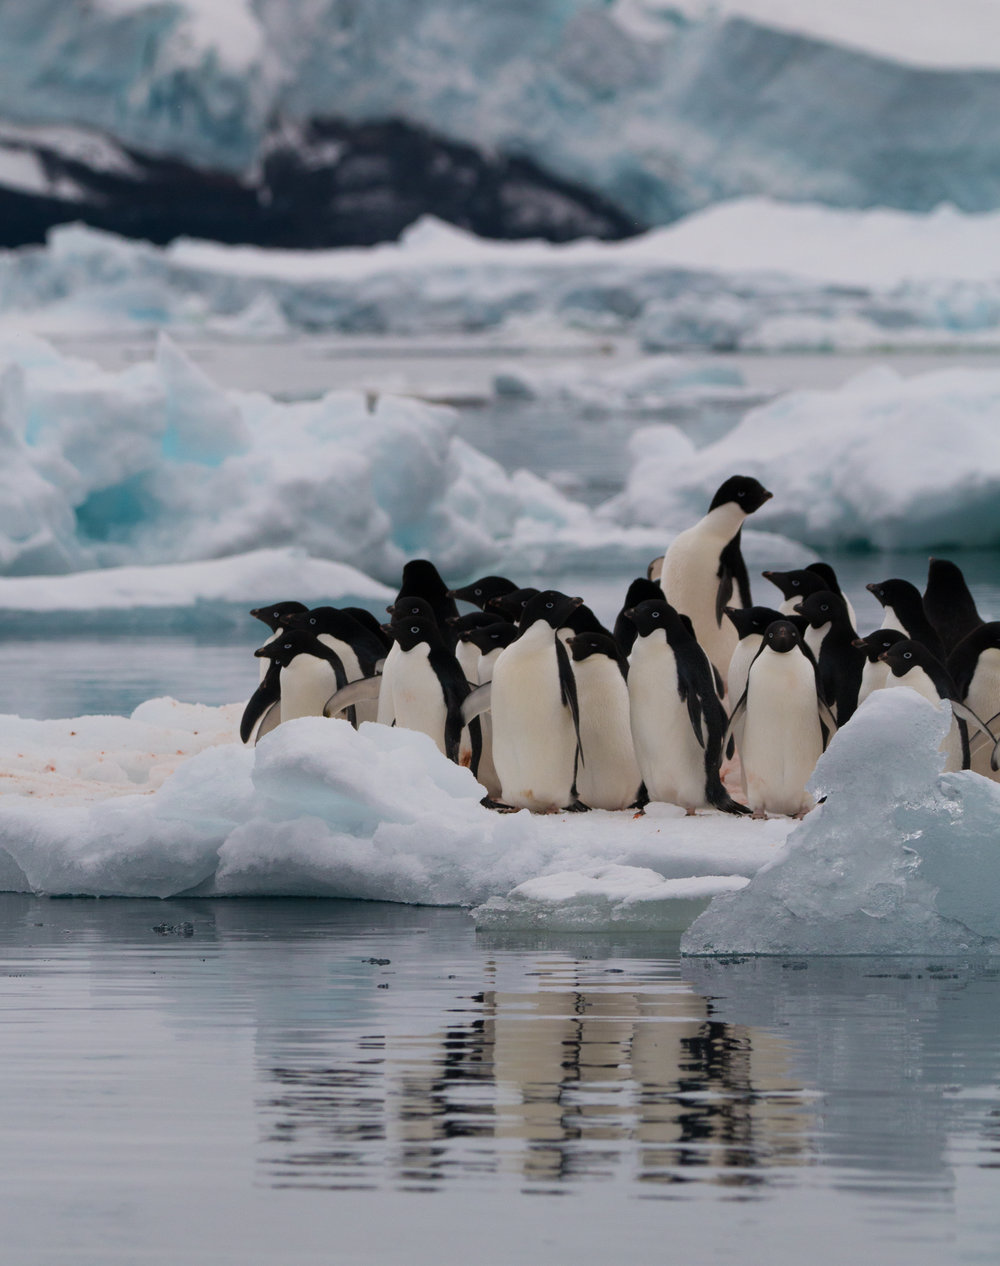 Penguins on an iceberg - Antarctica